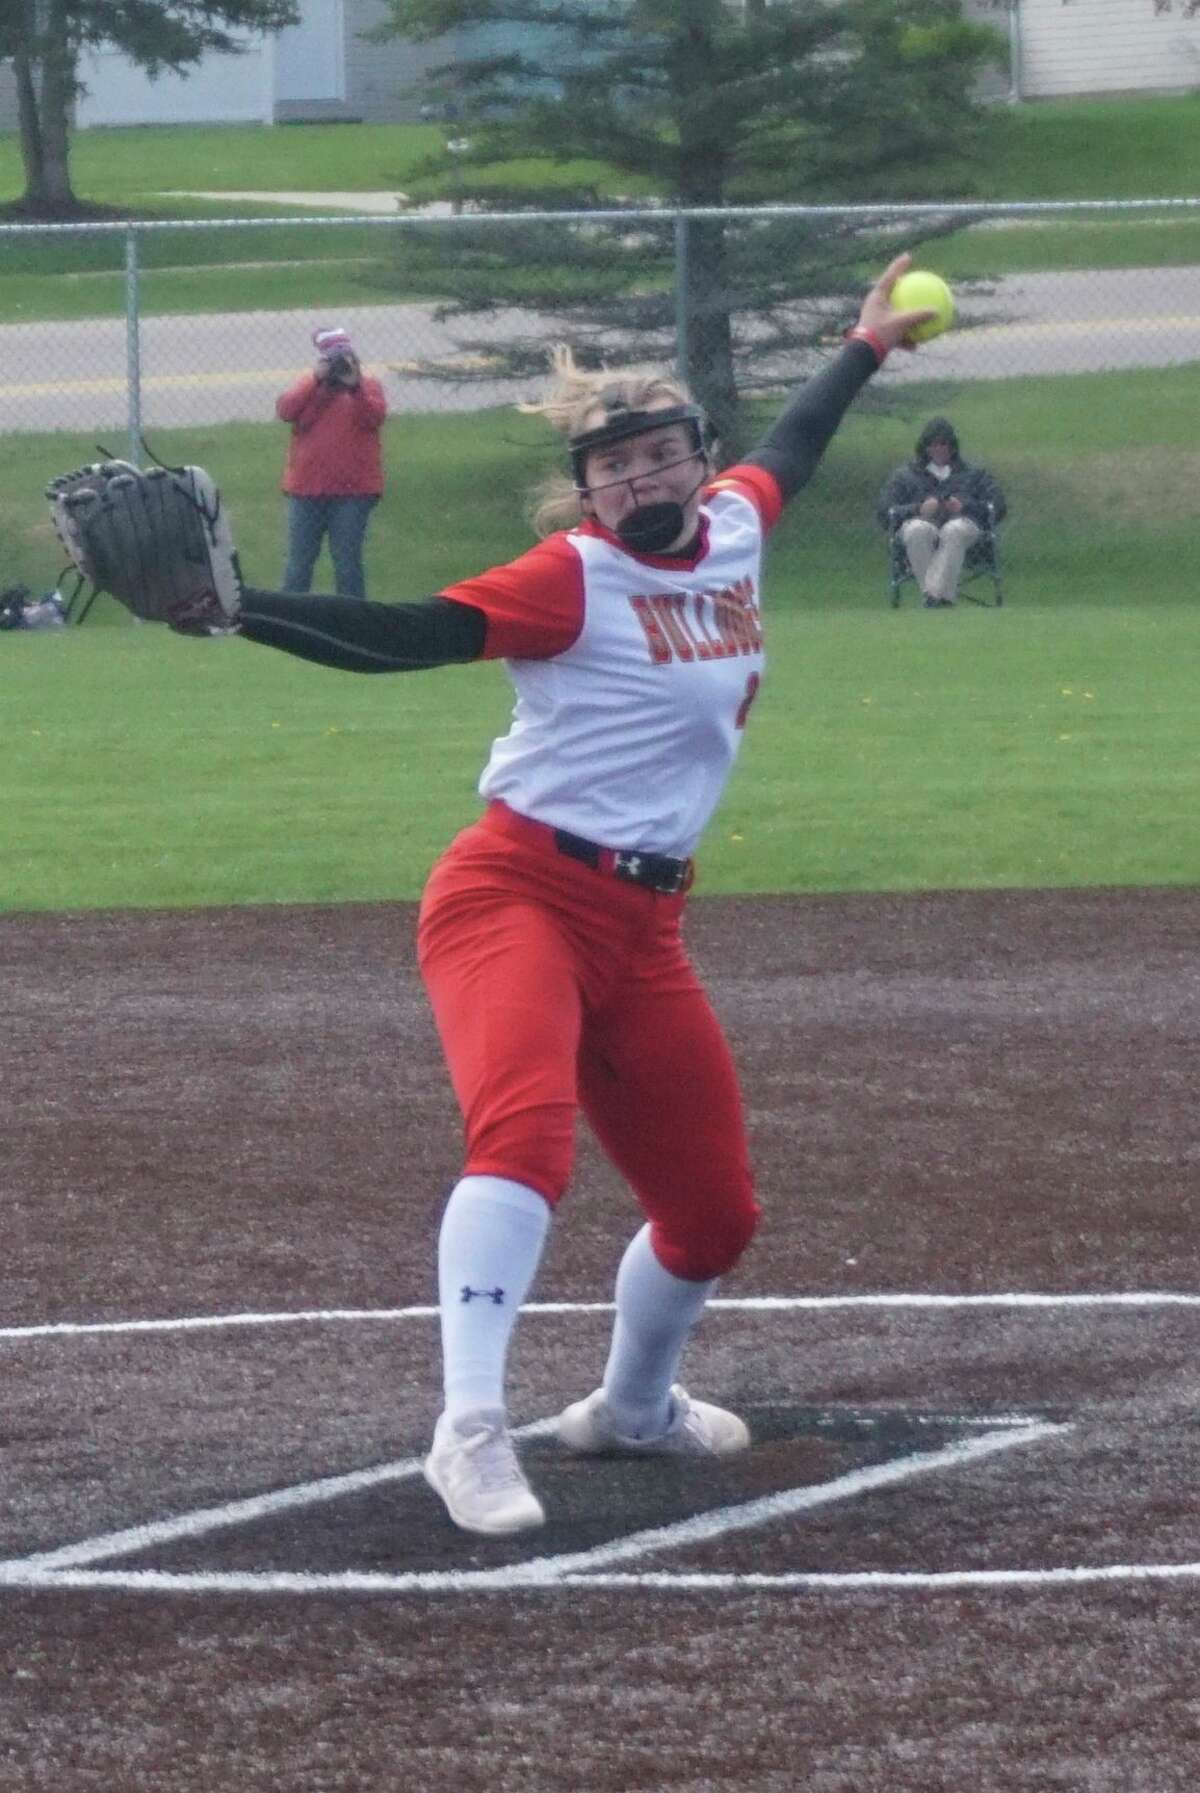 Ferris State lefthander Aryn Gallacher delivers a pitch during game one of a double header against Saginaw Valley State on Wednesday afternoon. (Pioneer photo/Joe Judd)